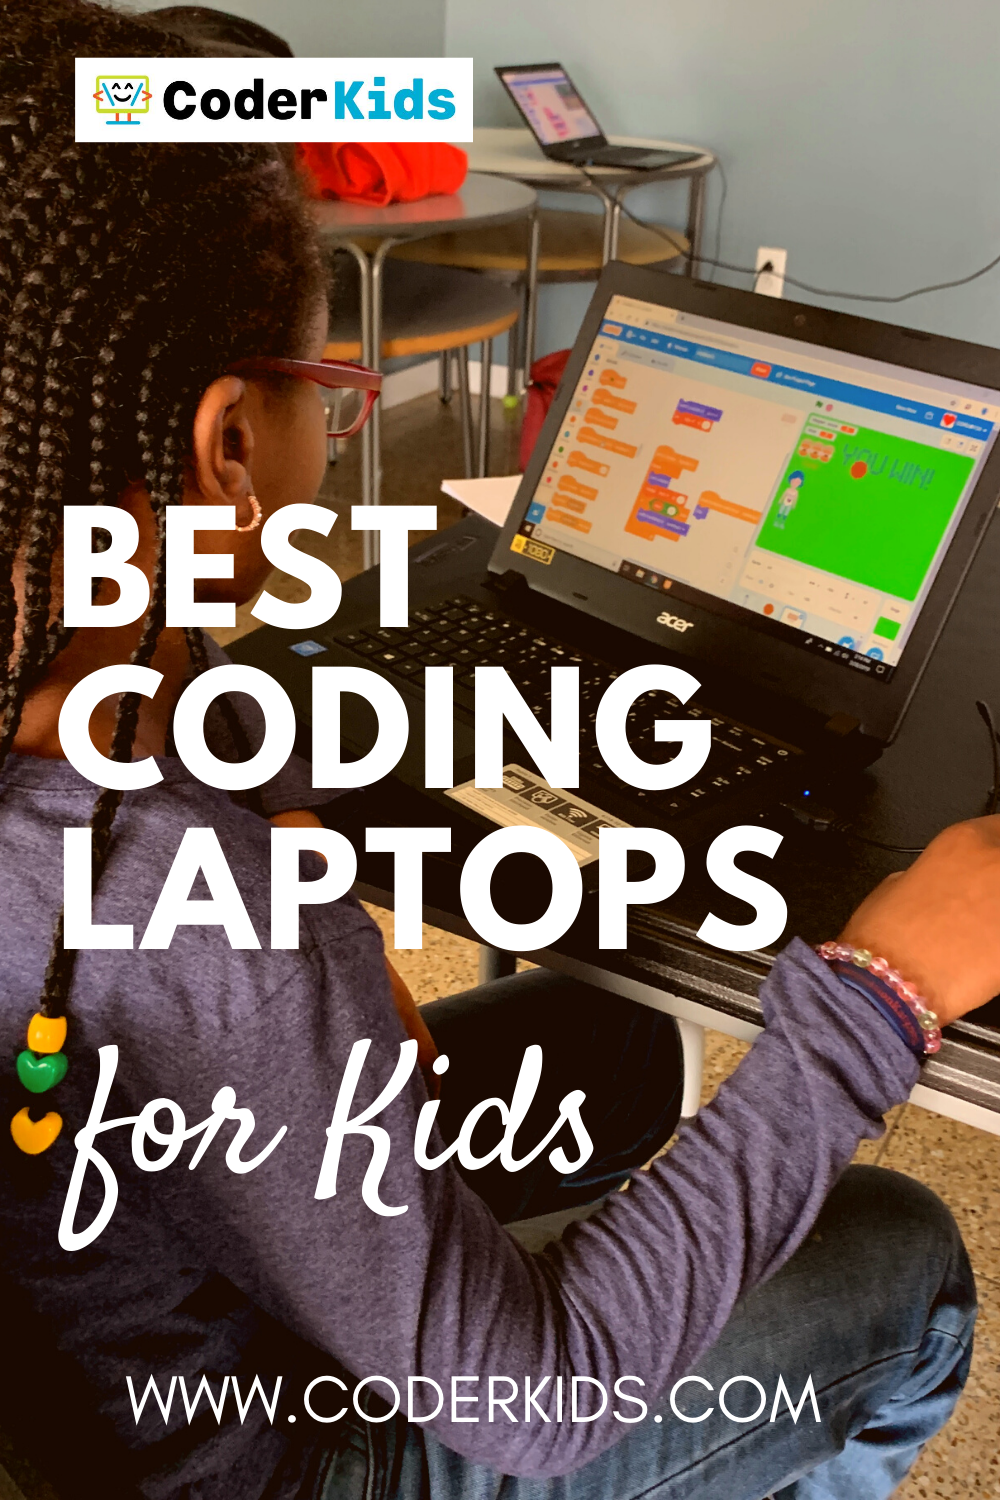 The 3 Best Coding Laptops To Buy Your Child Coder Kids Houston